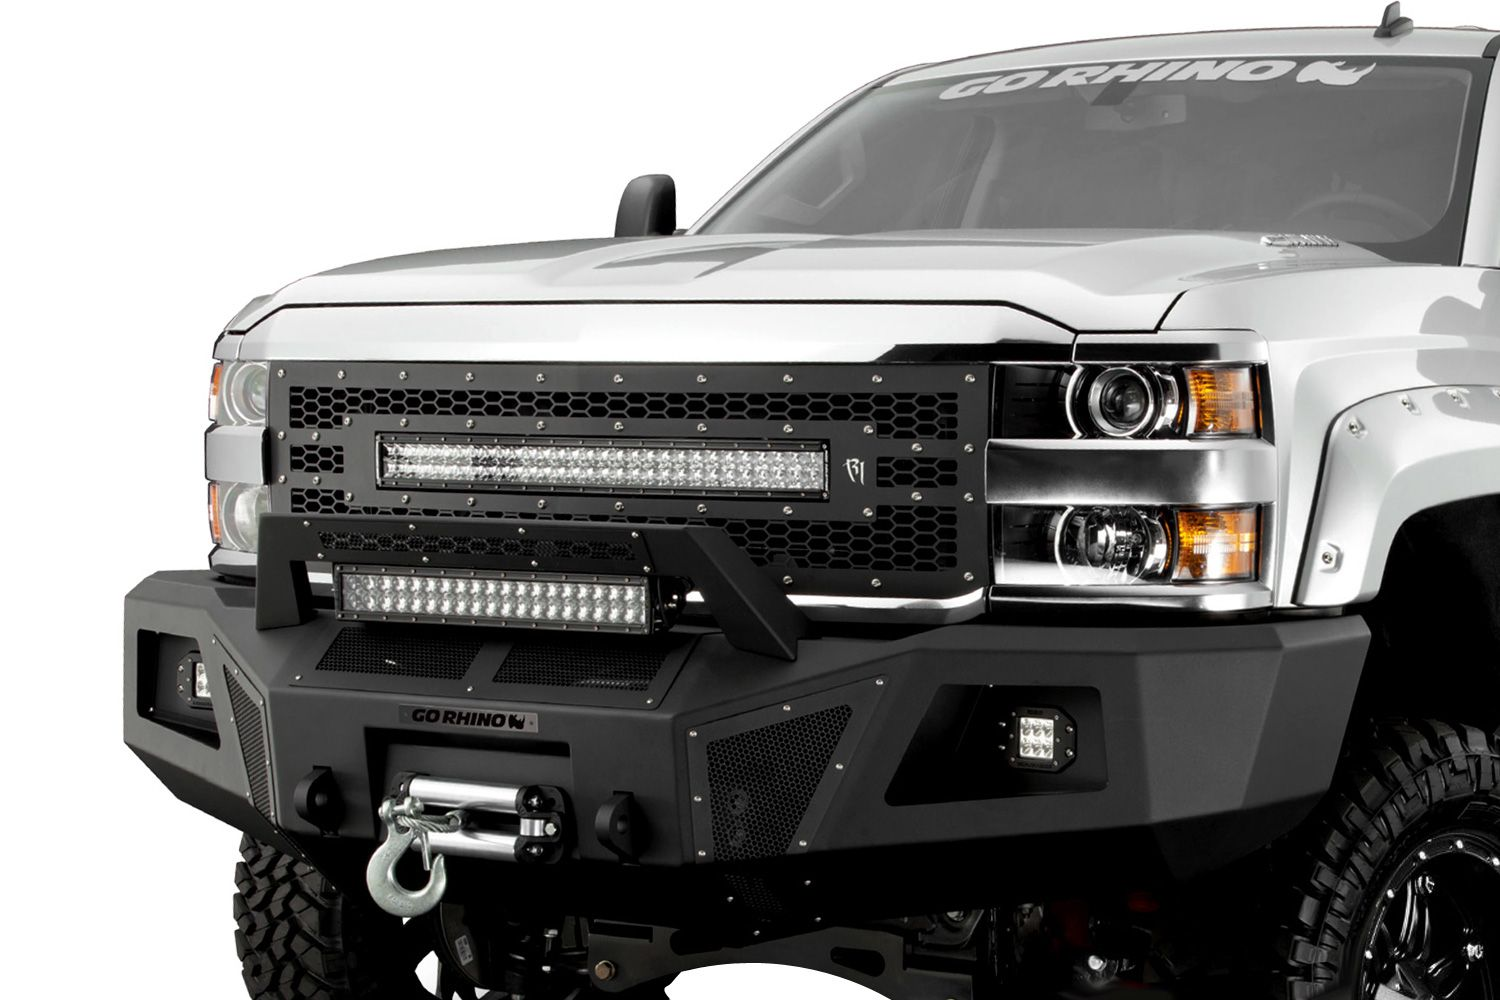 Go Rhino B10 Front Bumper Replacement Chevy Silverado Accessories Chevy Silverado 2011 Chevy Silverado